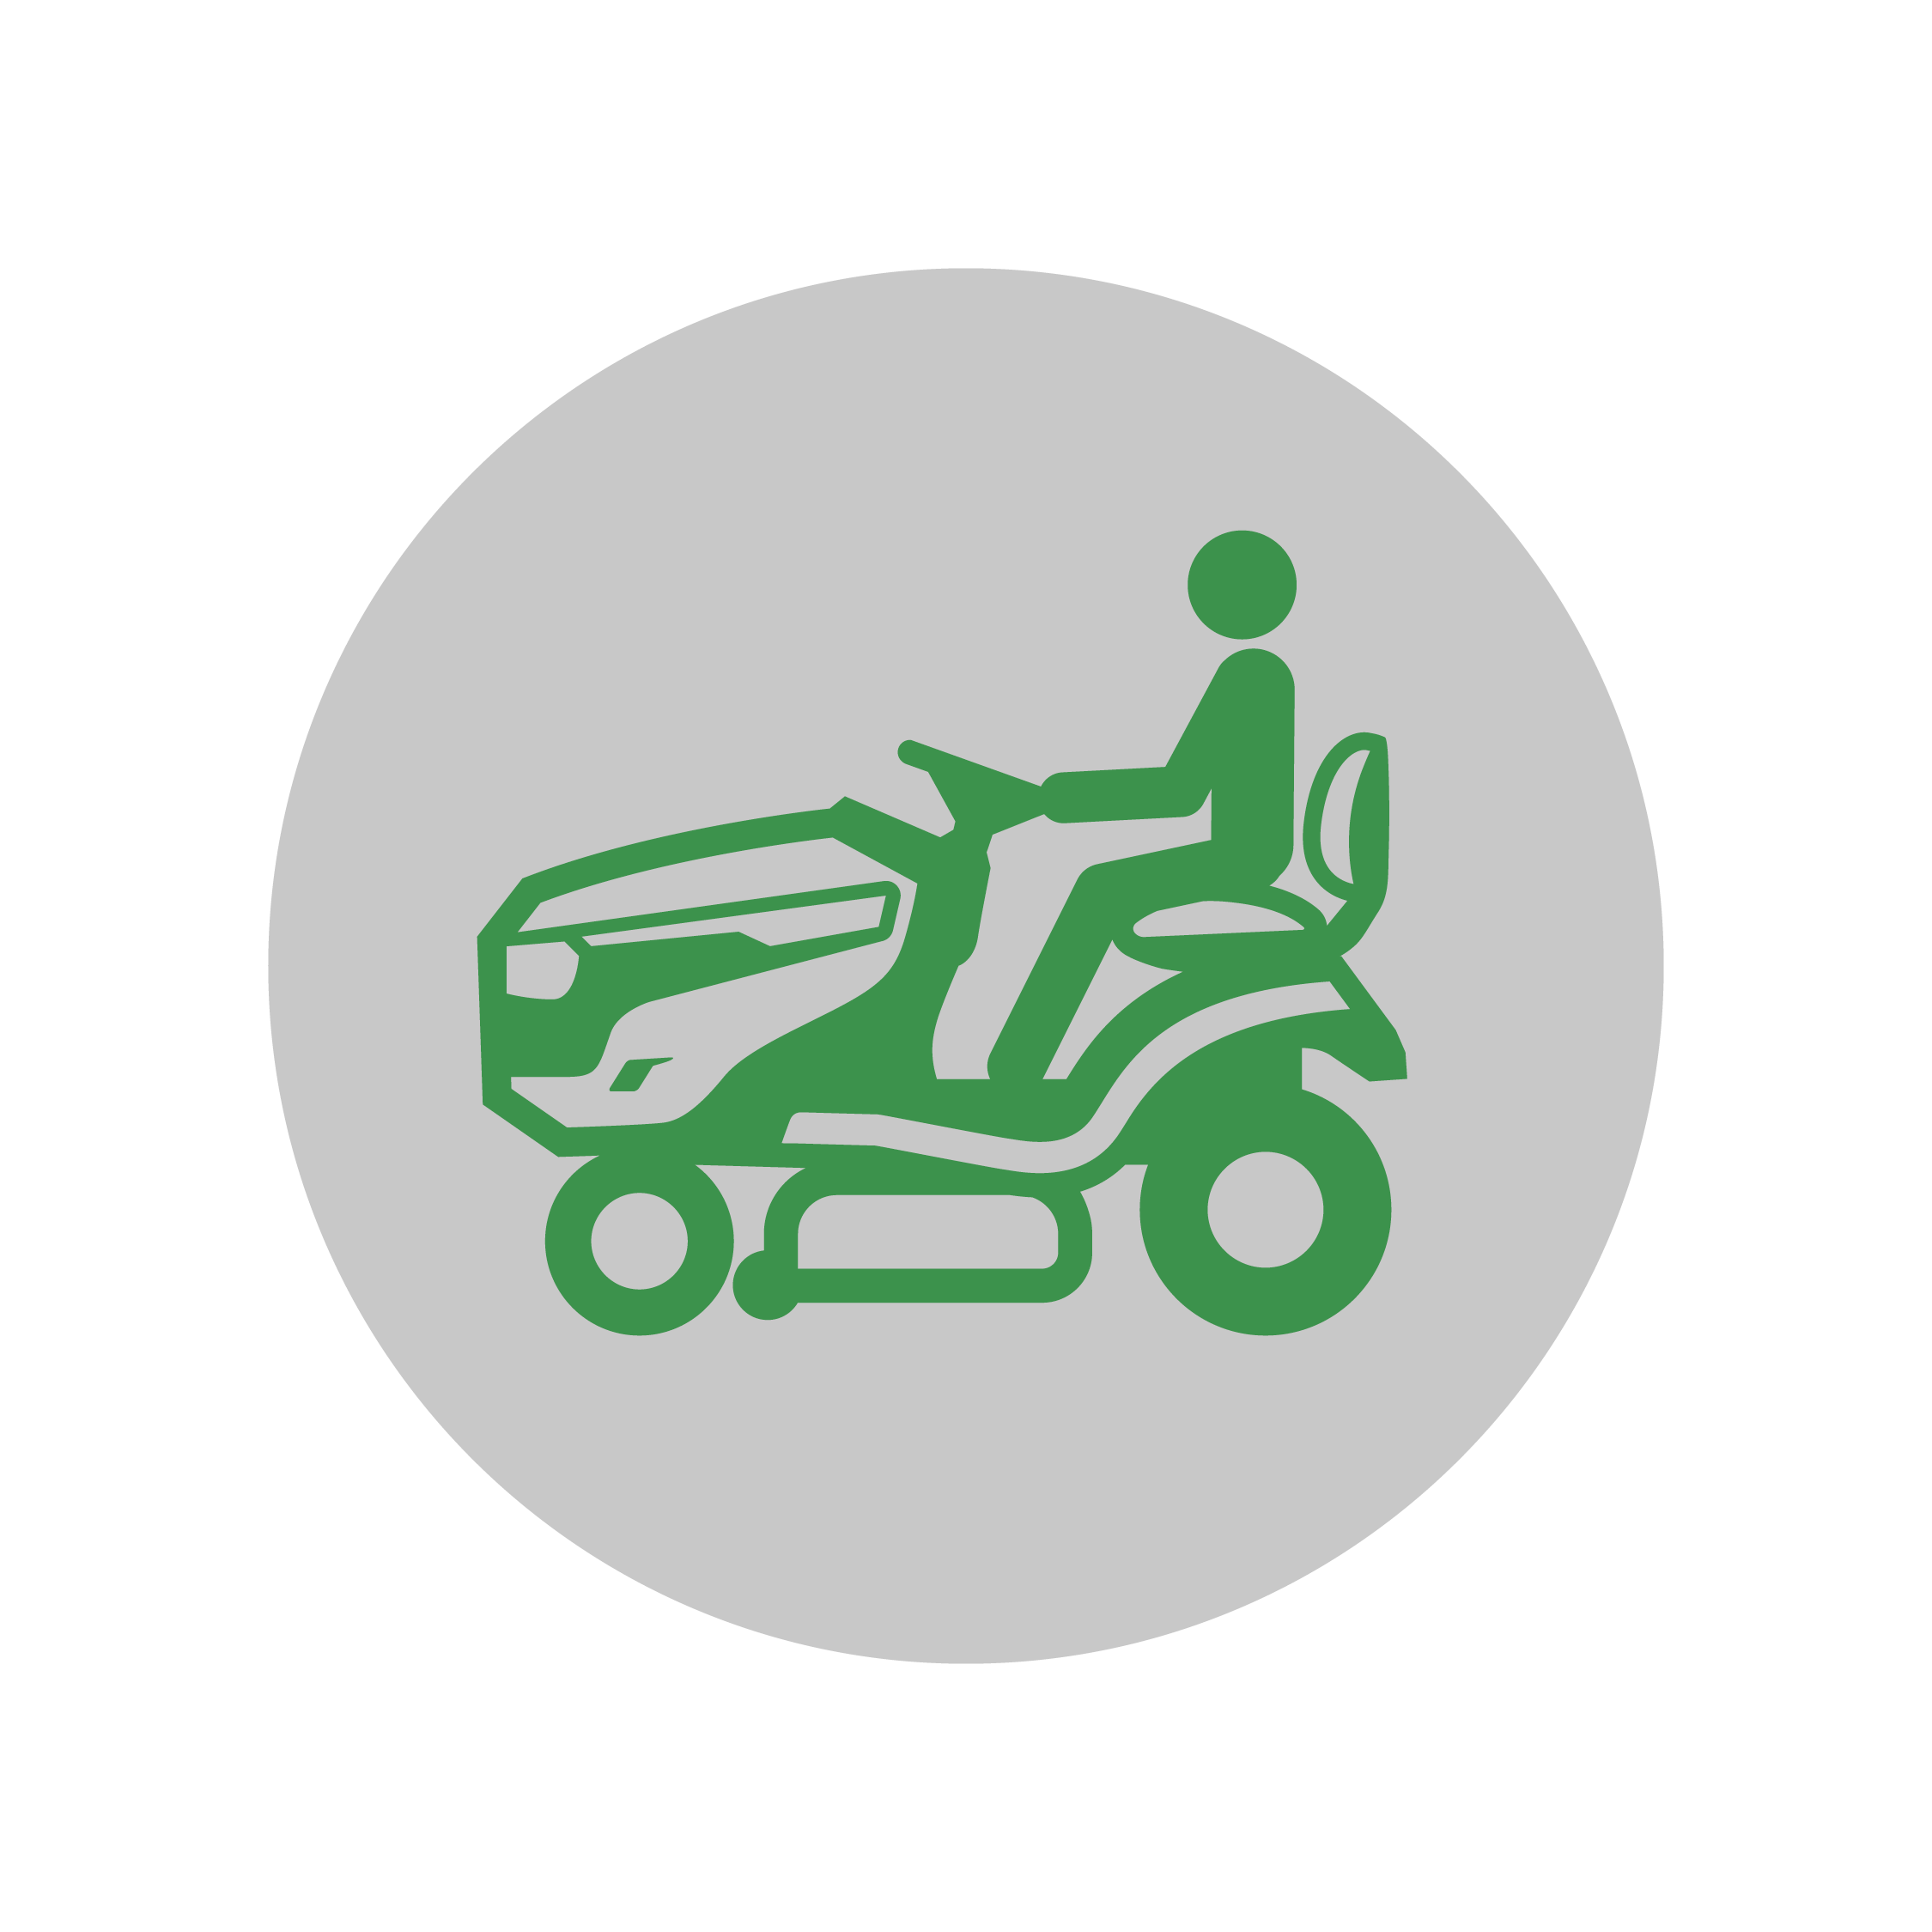 Graphic of a man riding a lawn mower